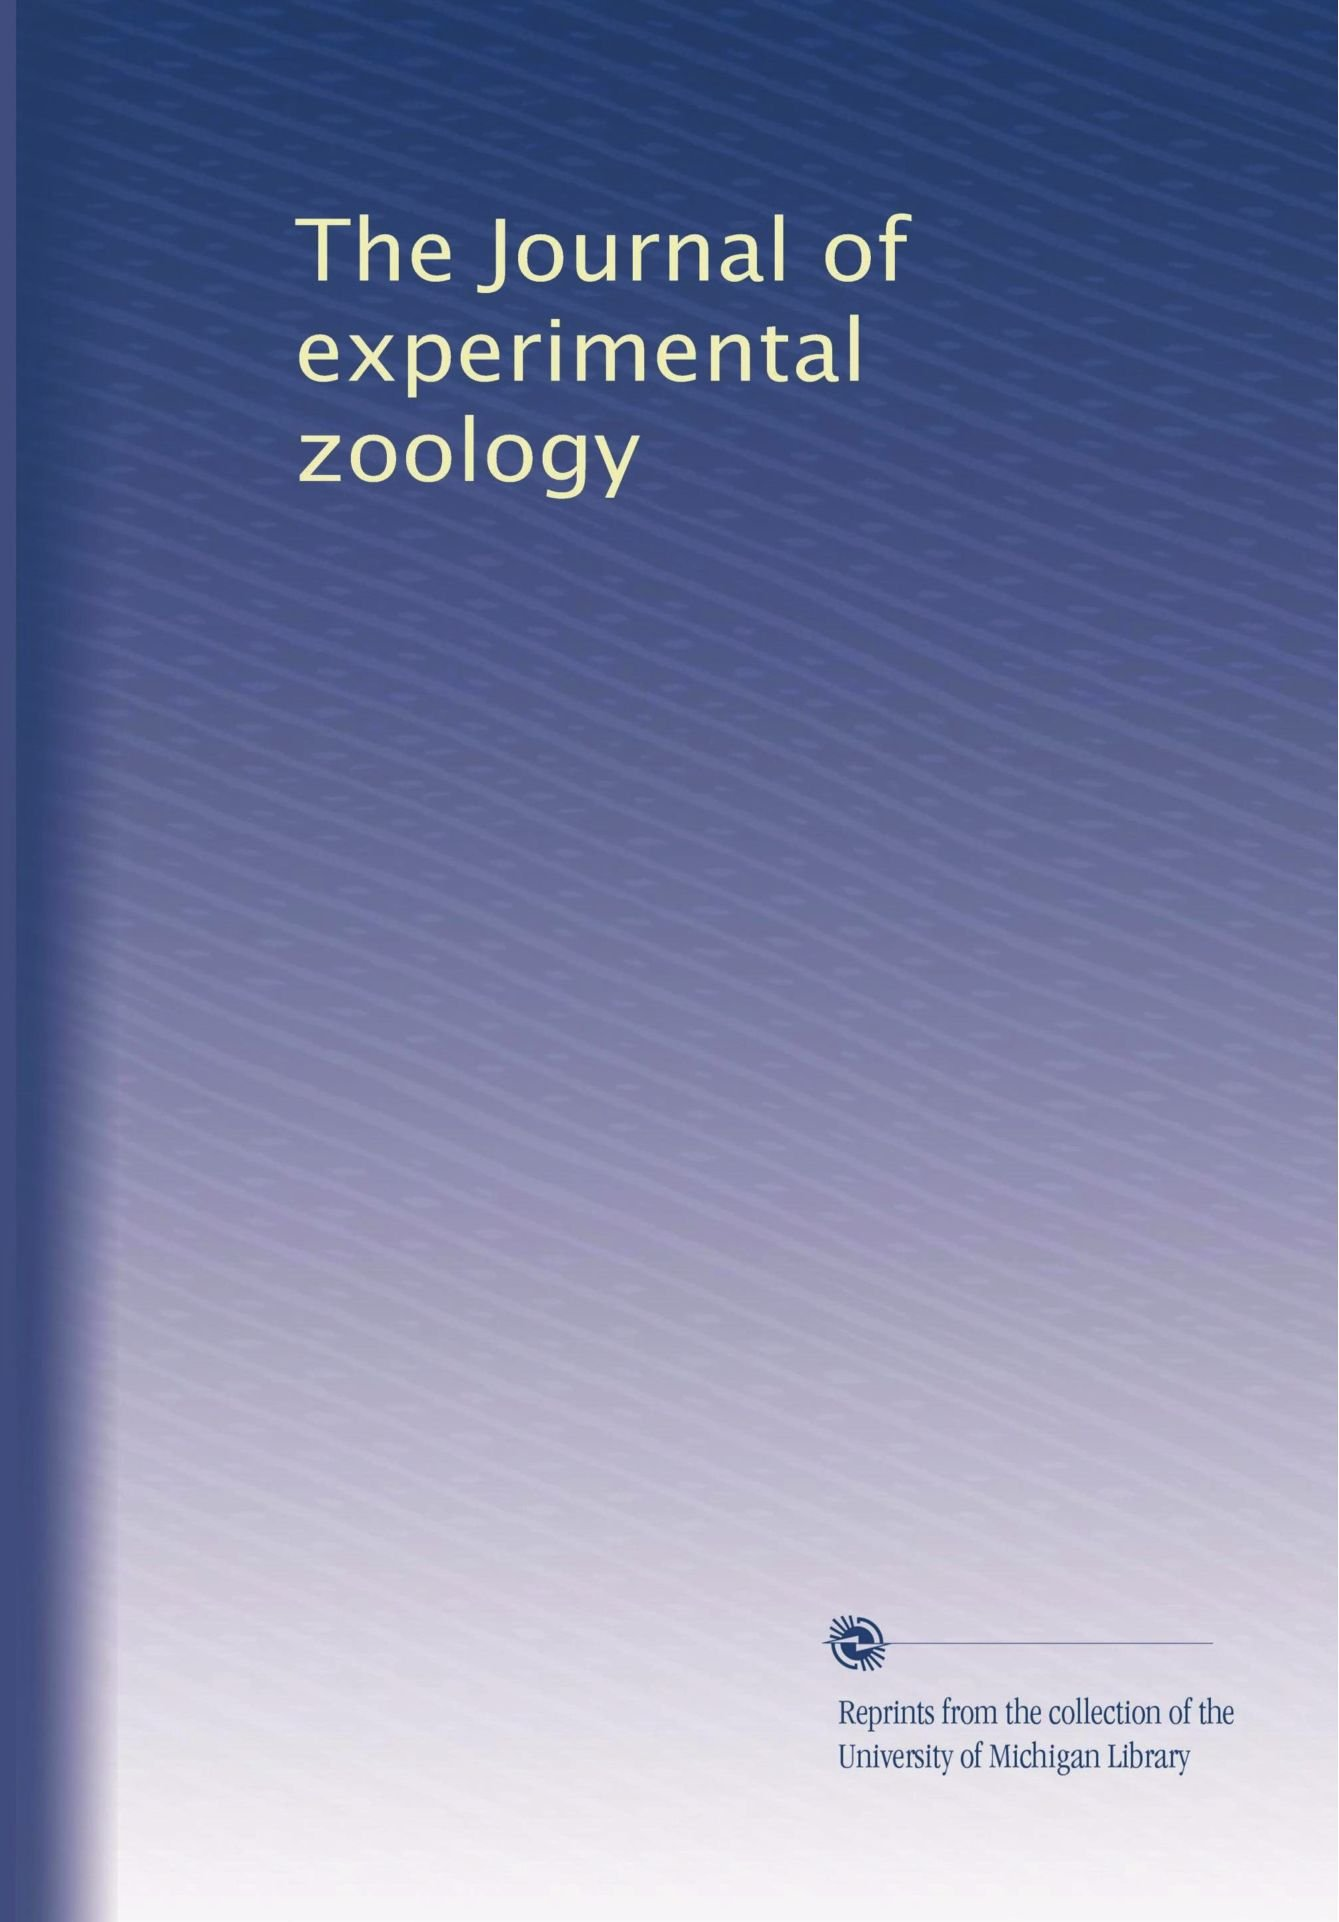 Download The Journal of experimental zoology (Volume 20) pdf